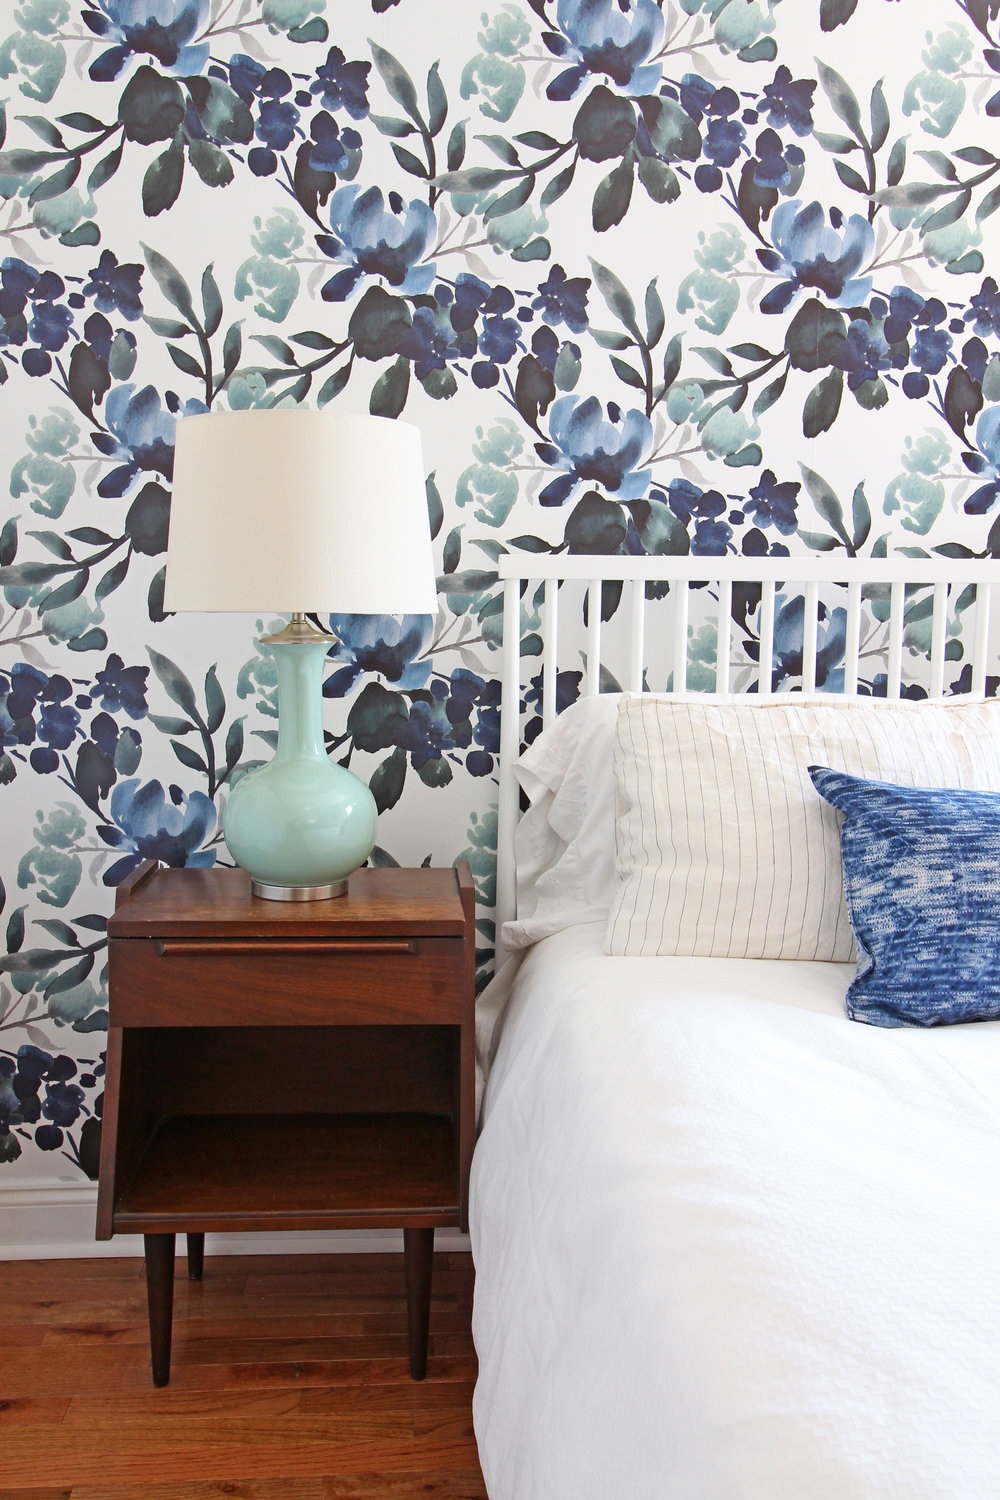 How do you choose the right side table and table lamp combination? Head to this post! I've got six no-fail combinations for you to try in your home and a lot of tips on how to choose well! // A modern farmhouse eclectic guest bedroom in progress with blue-green floral wallpaper and mid-century nightstands.